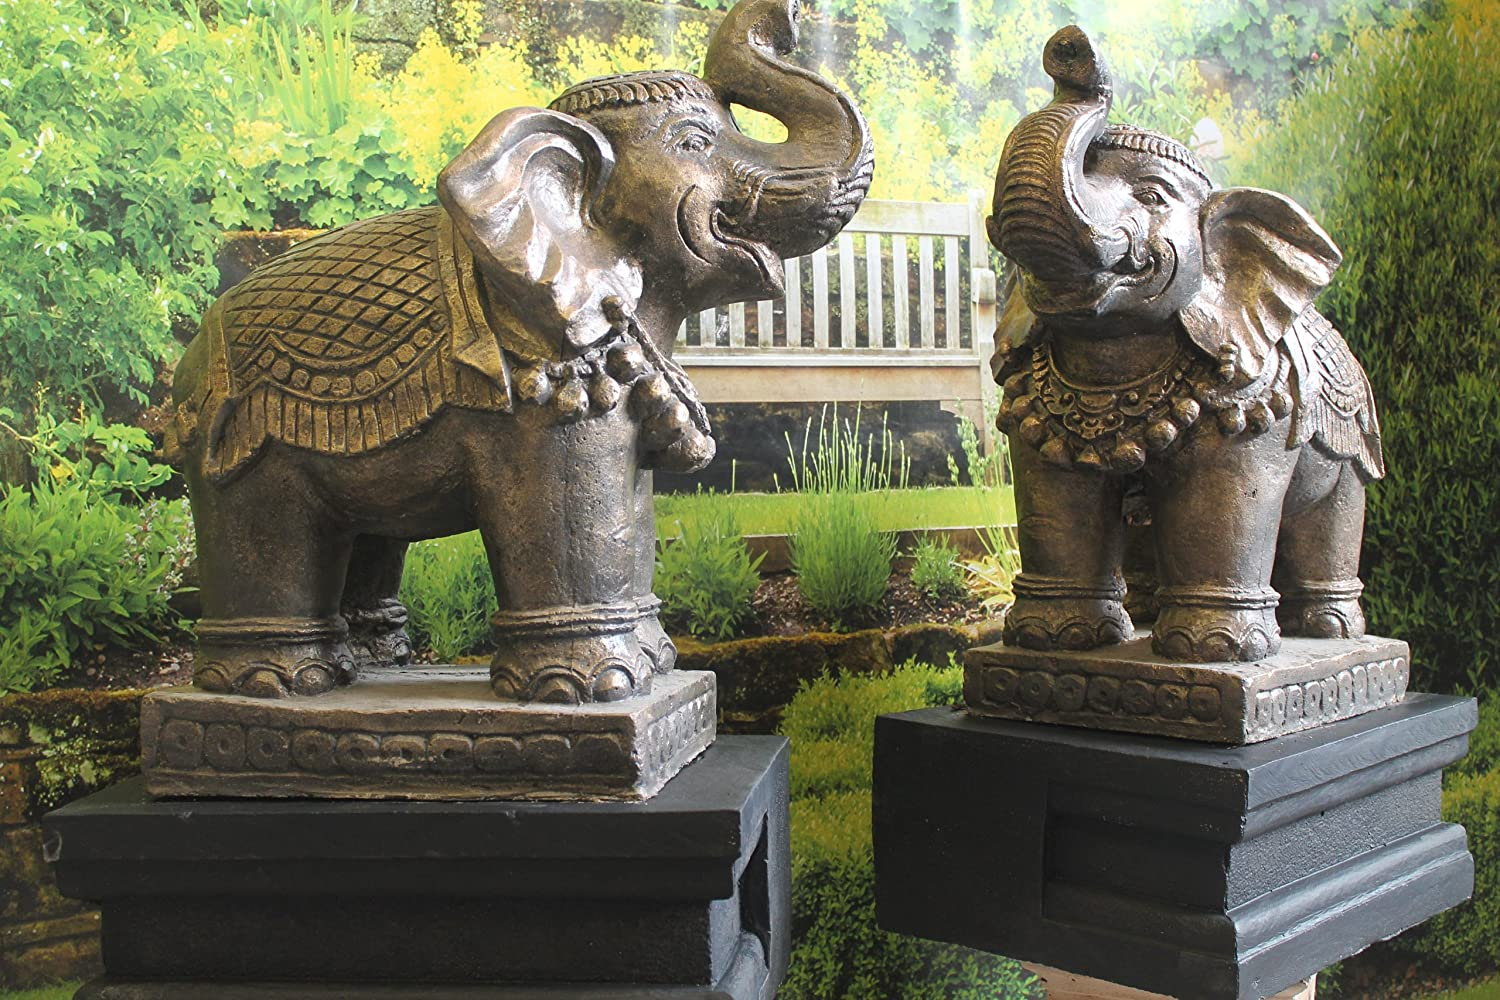 Ornate Stone Elephants And Plinths Pair Garden Ornament Statues:  Amazon.co.uk: Garden U0026 Outdoors